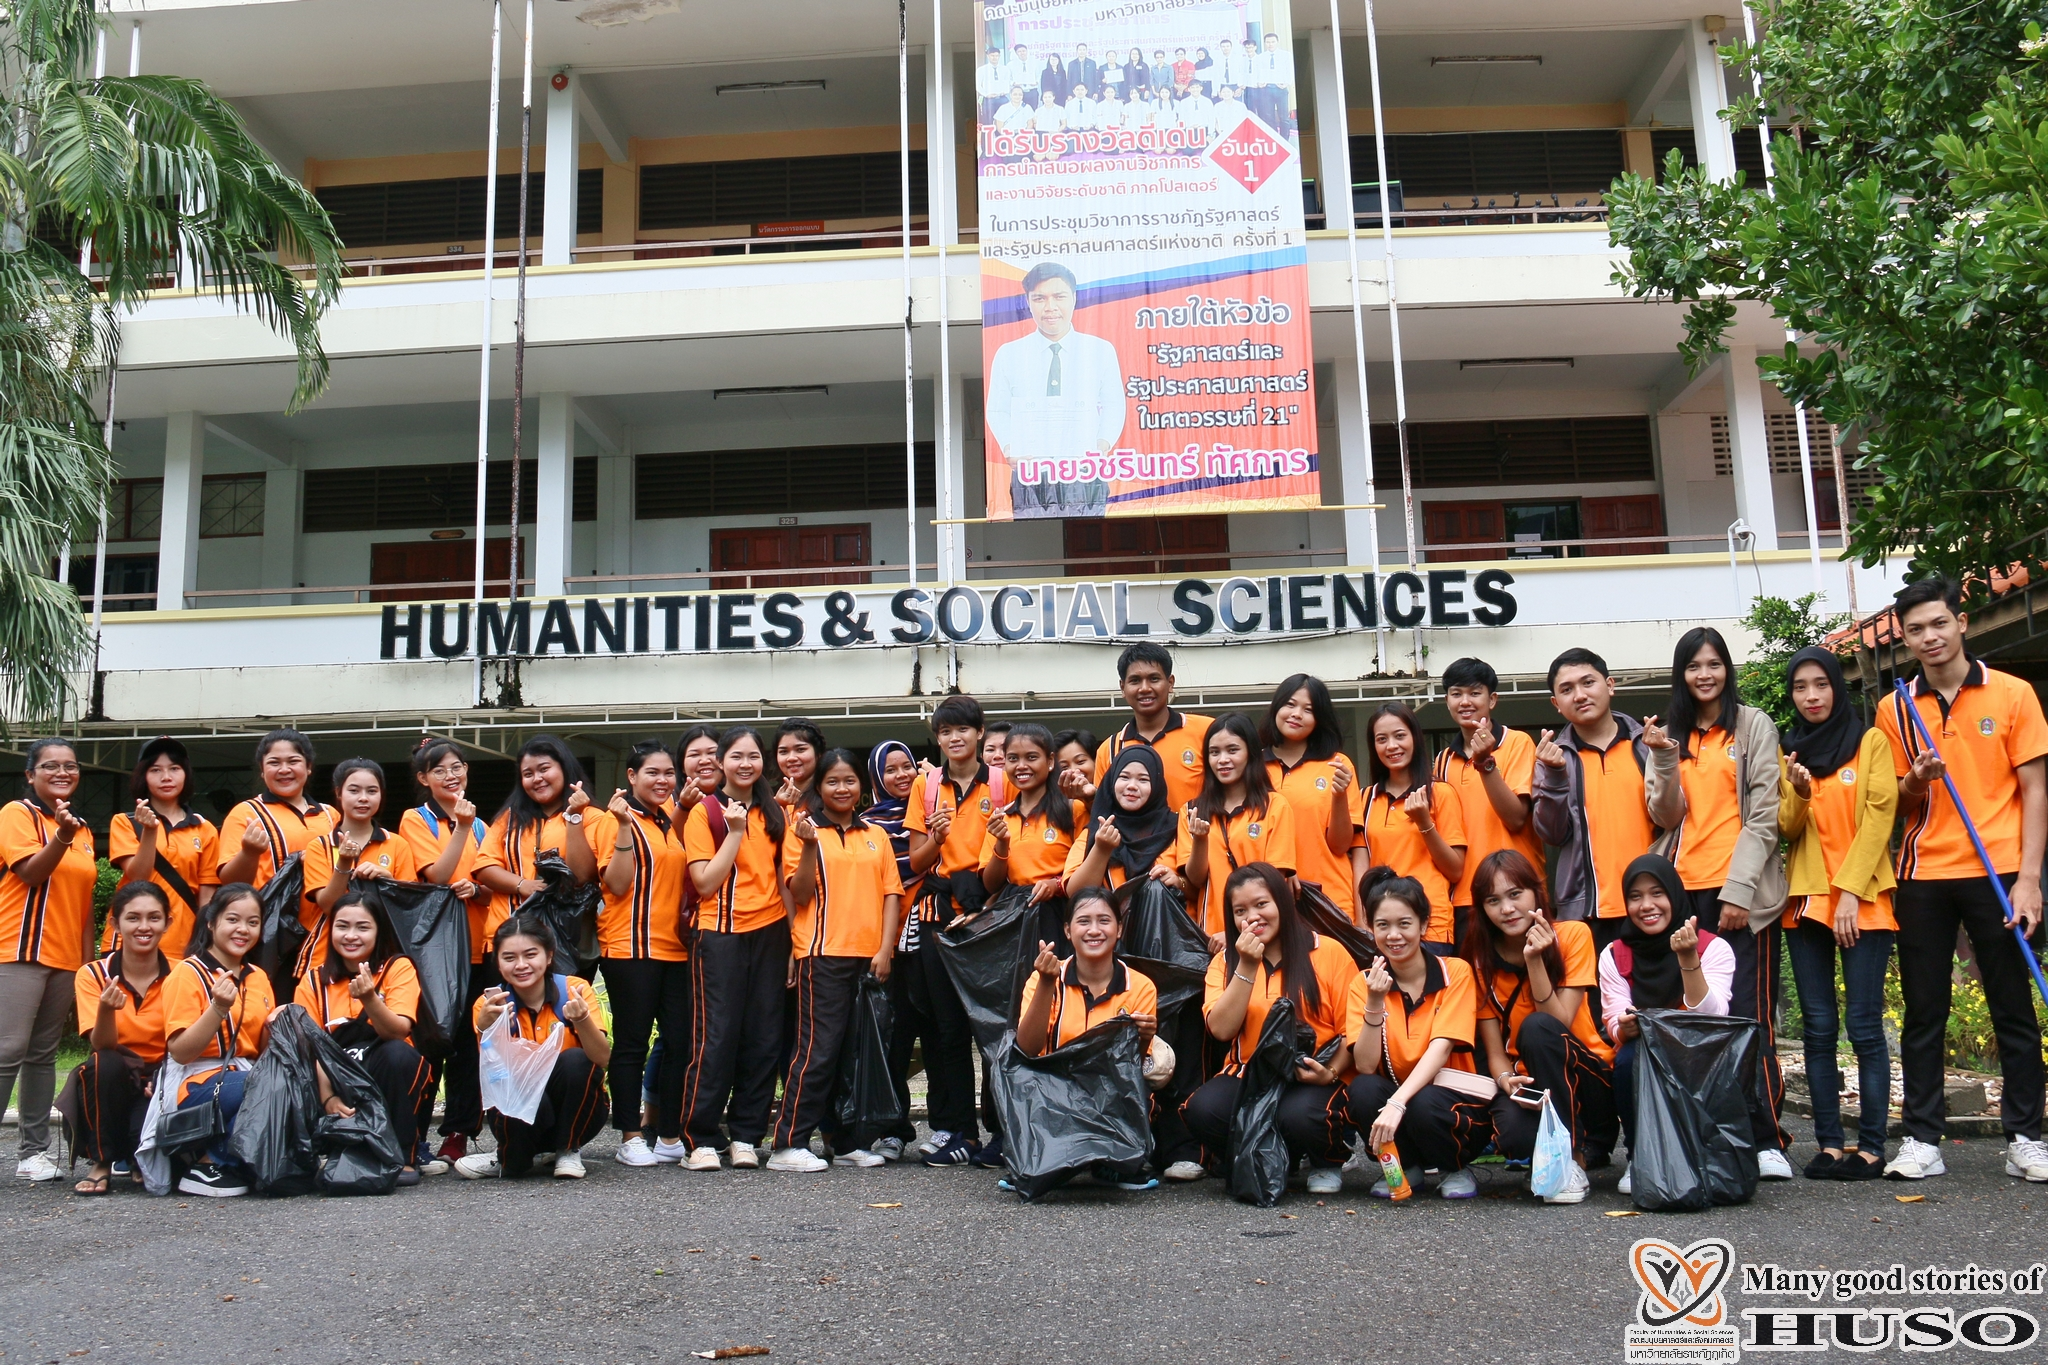 HUSO PKRU Keep Phuket Clean by our hands and Hearts 5 July 2018 10